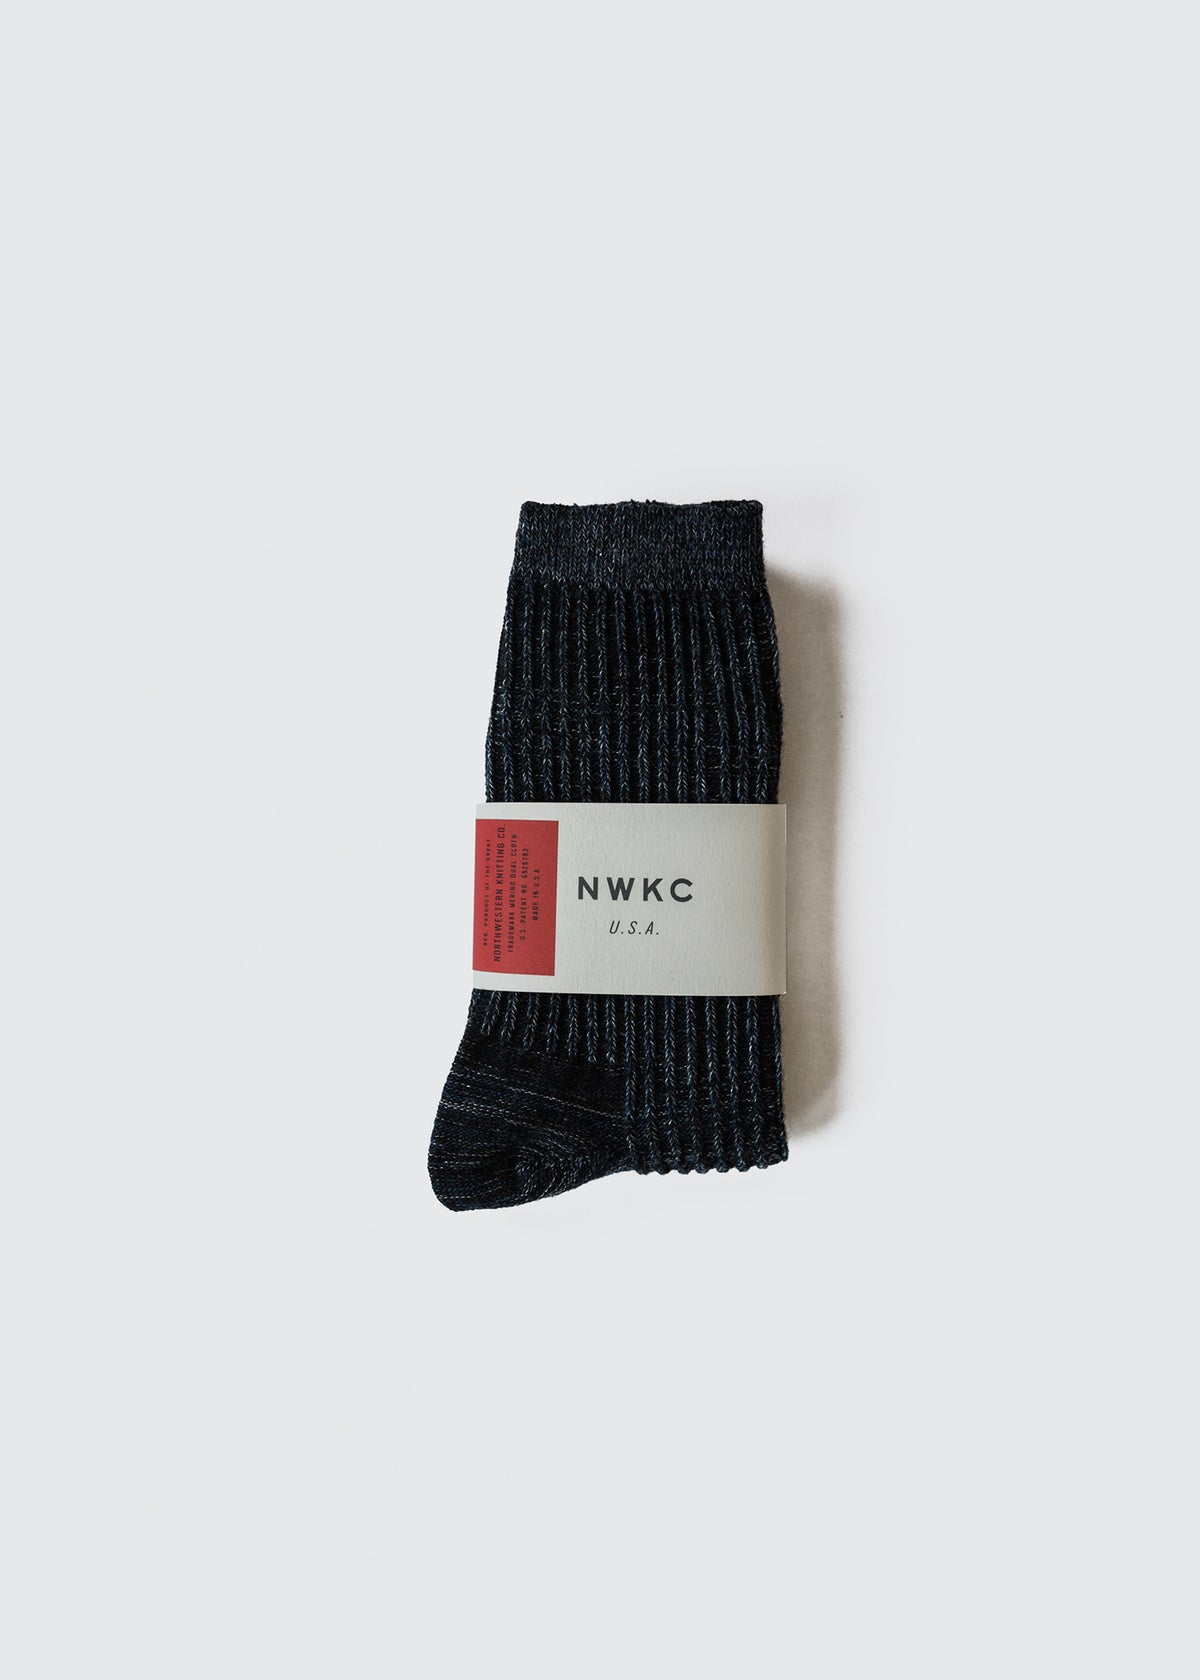 A01 - SOCK - NAVY - Wilson & Willy's - MPLS Neighbor Goods